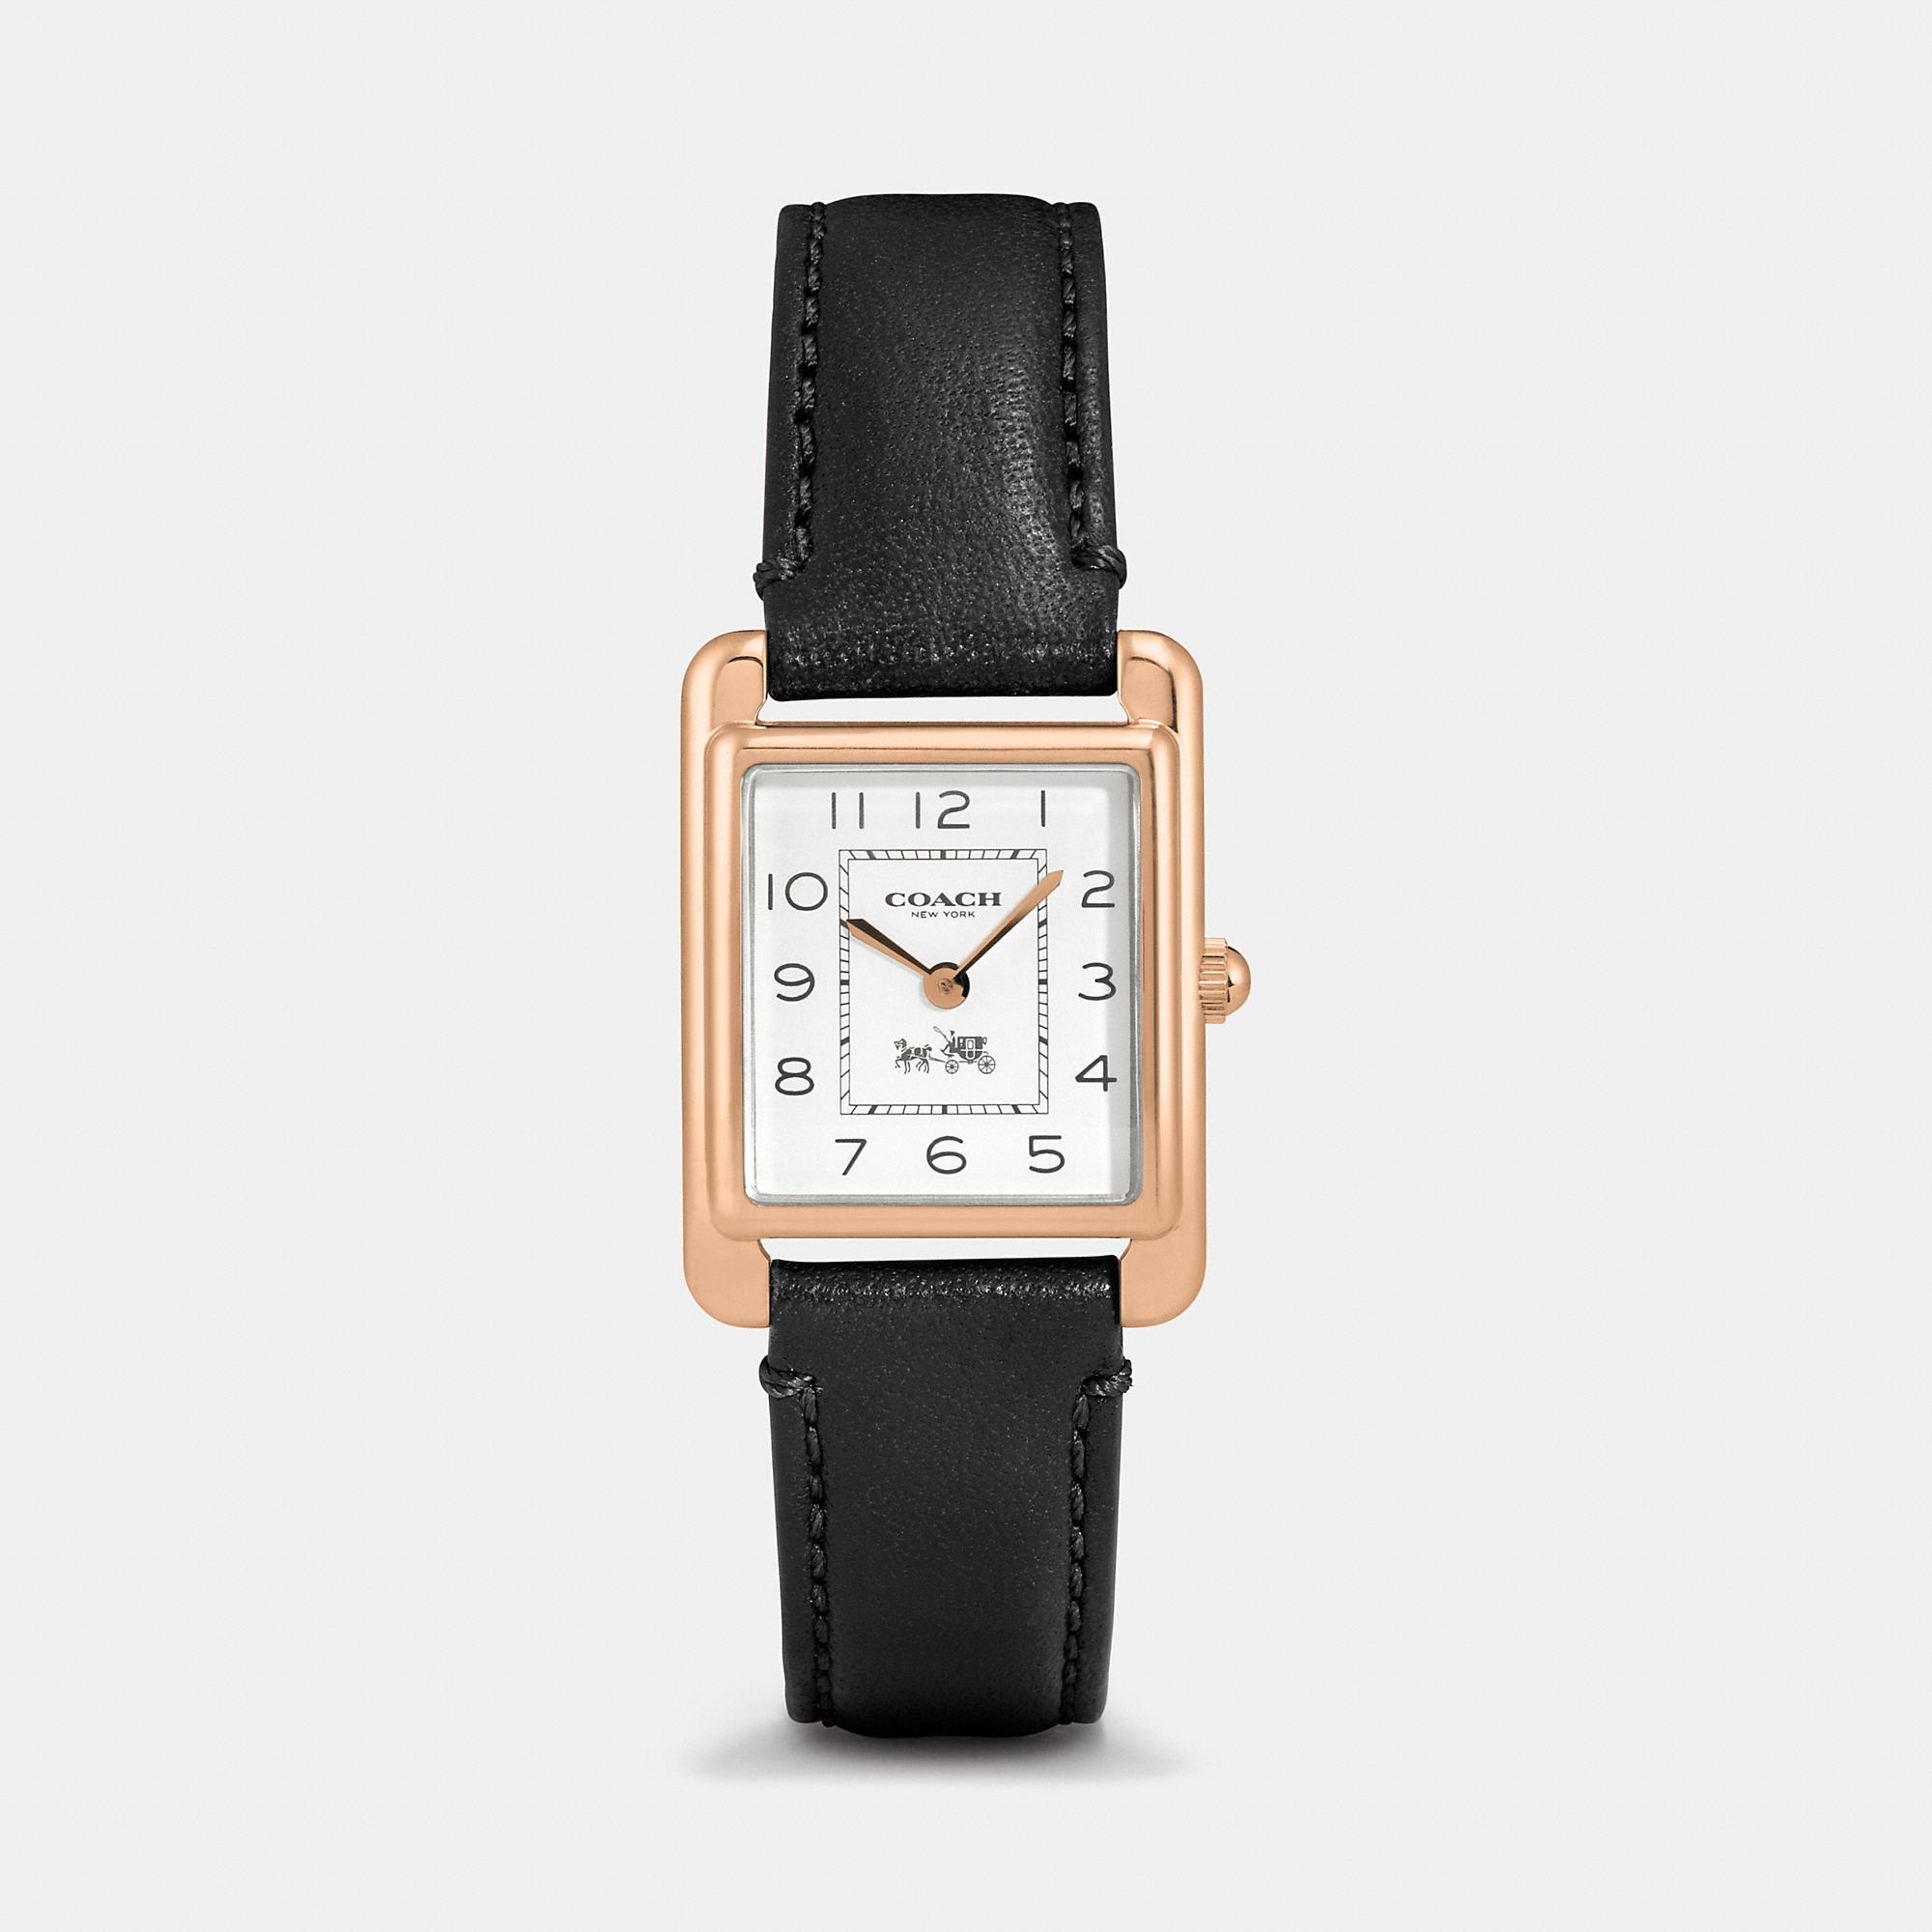 7236a9dba6 COACH Page Rose Gold Plated Strap Watch in Black - Lyst